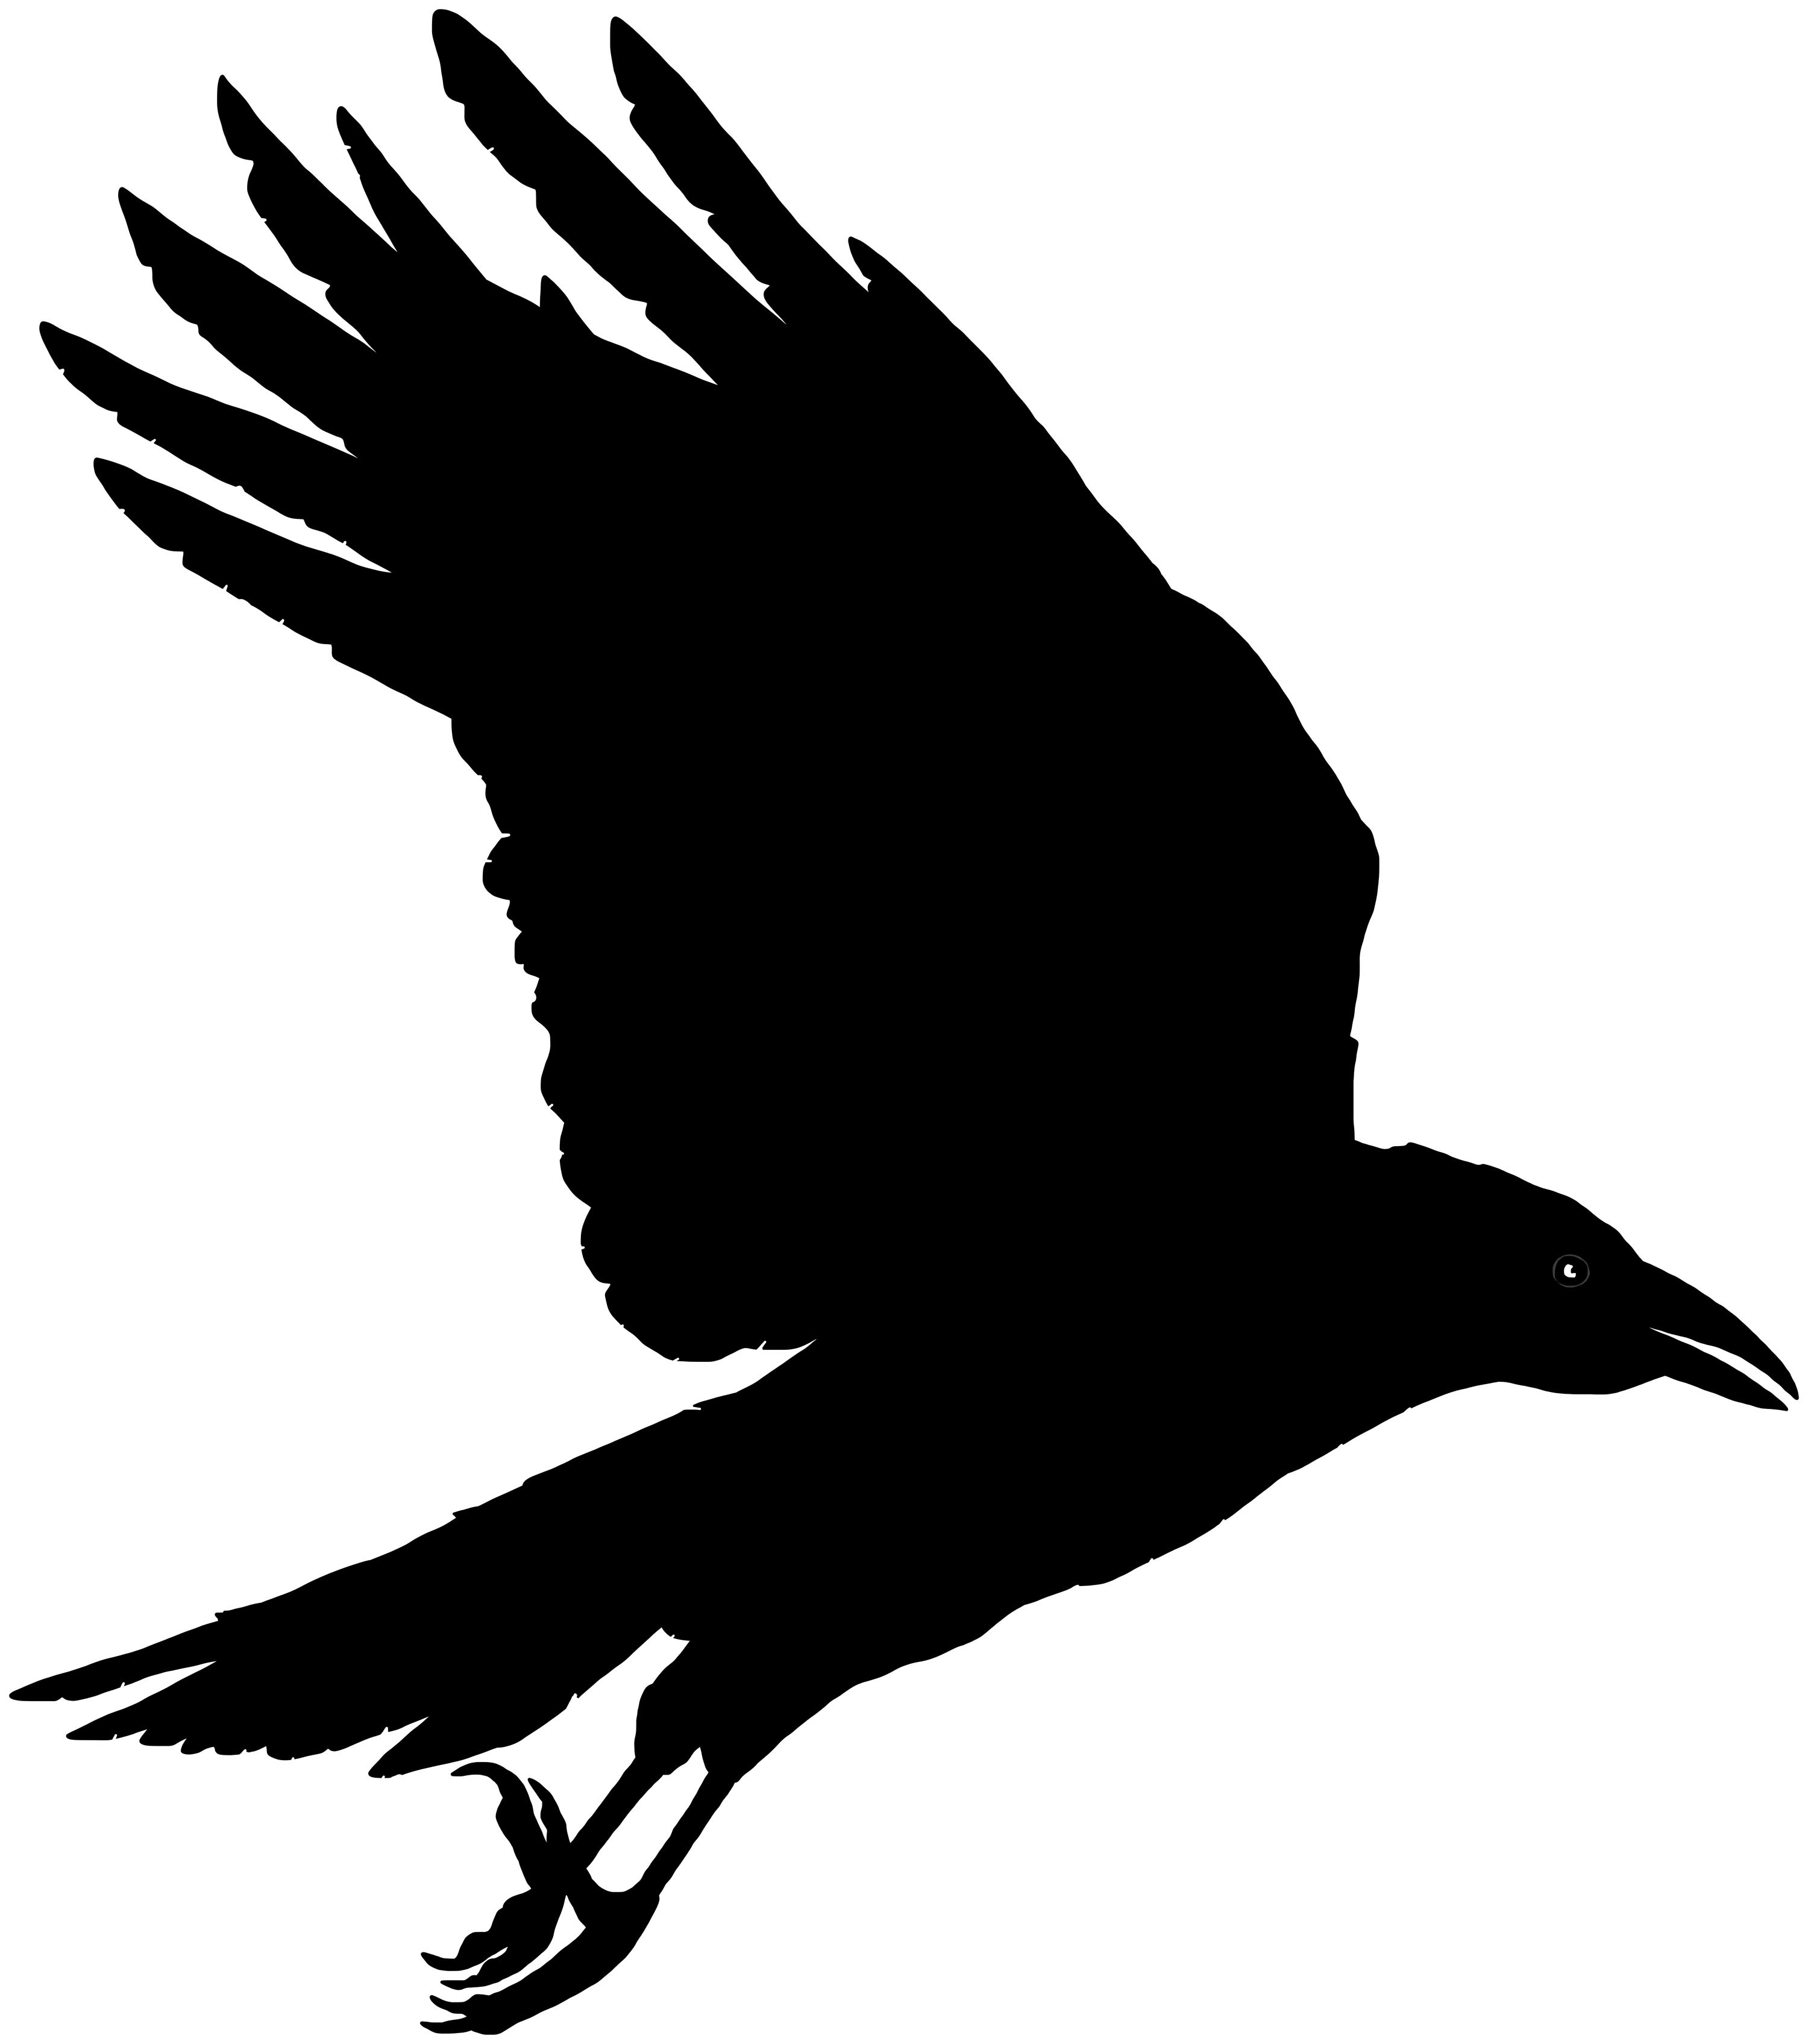 Free clipart crow clip art black and white library Flying crow clipart 4 » Clipart Portal clip art black and white library